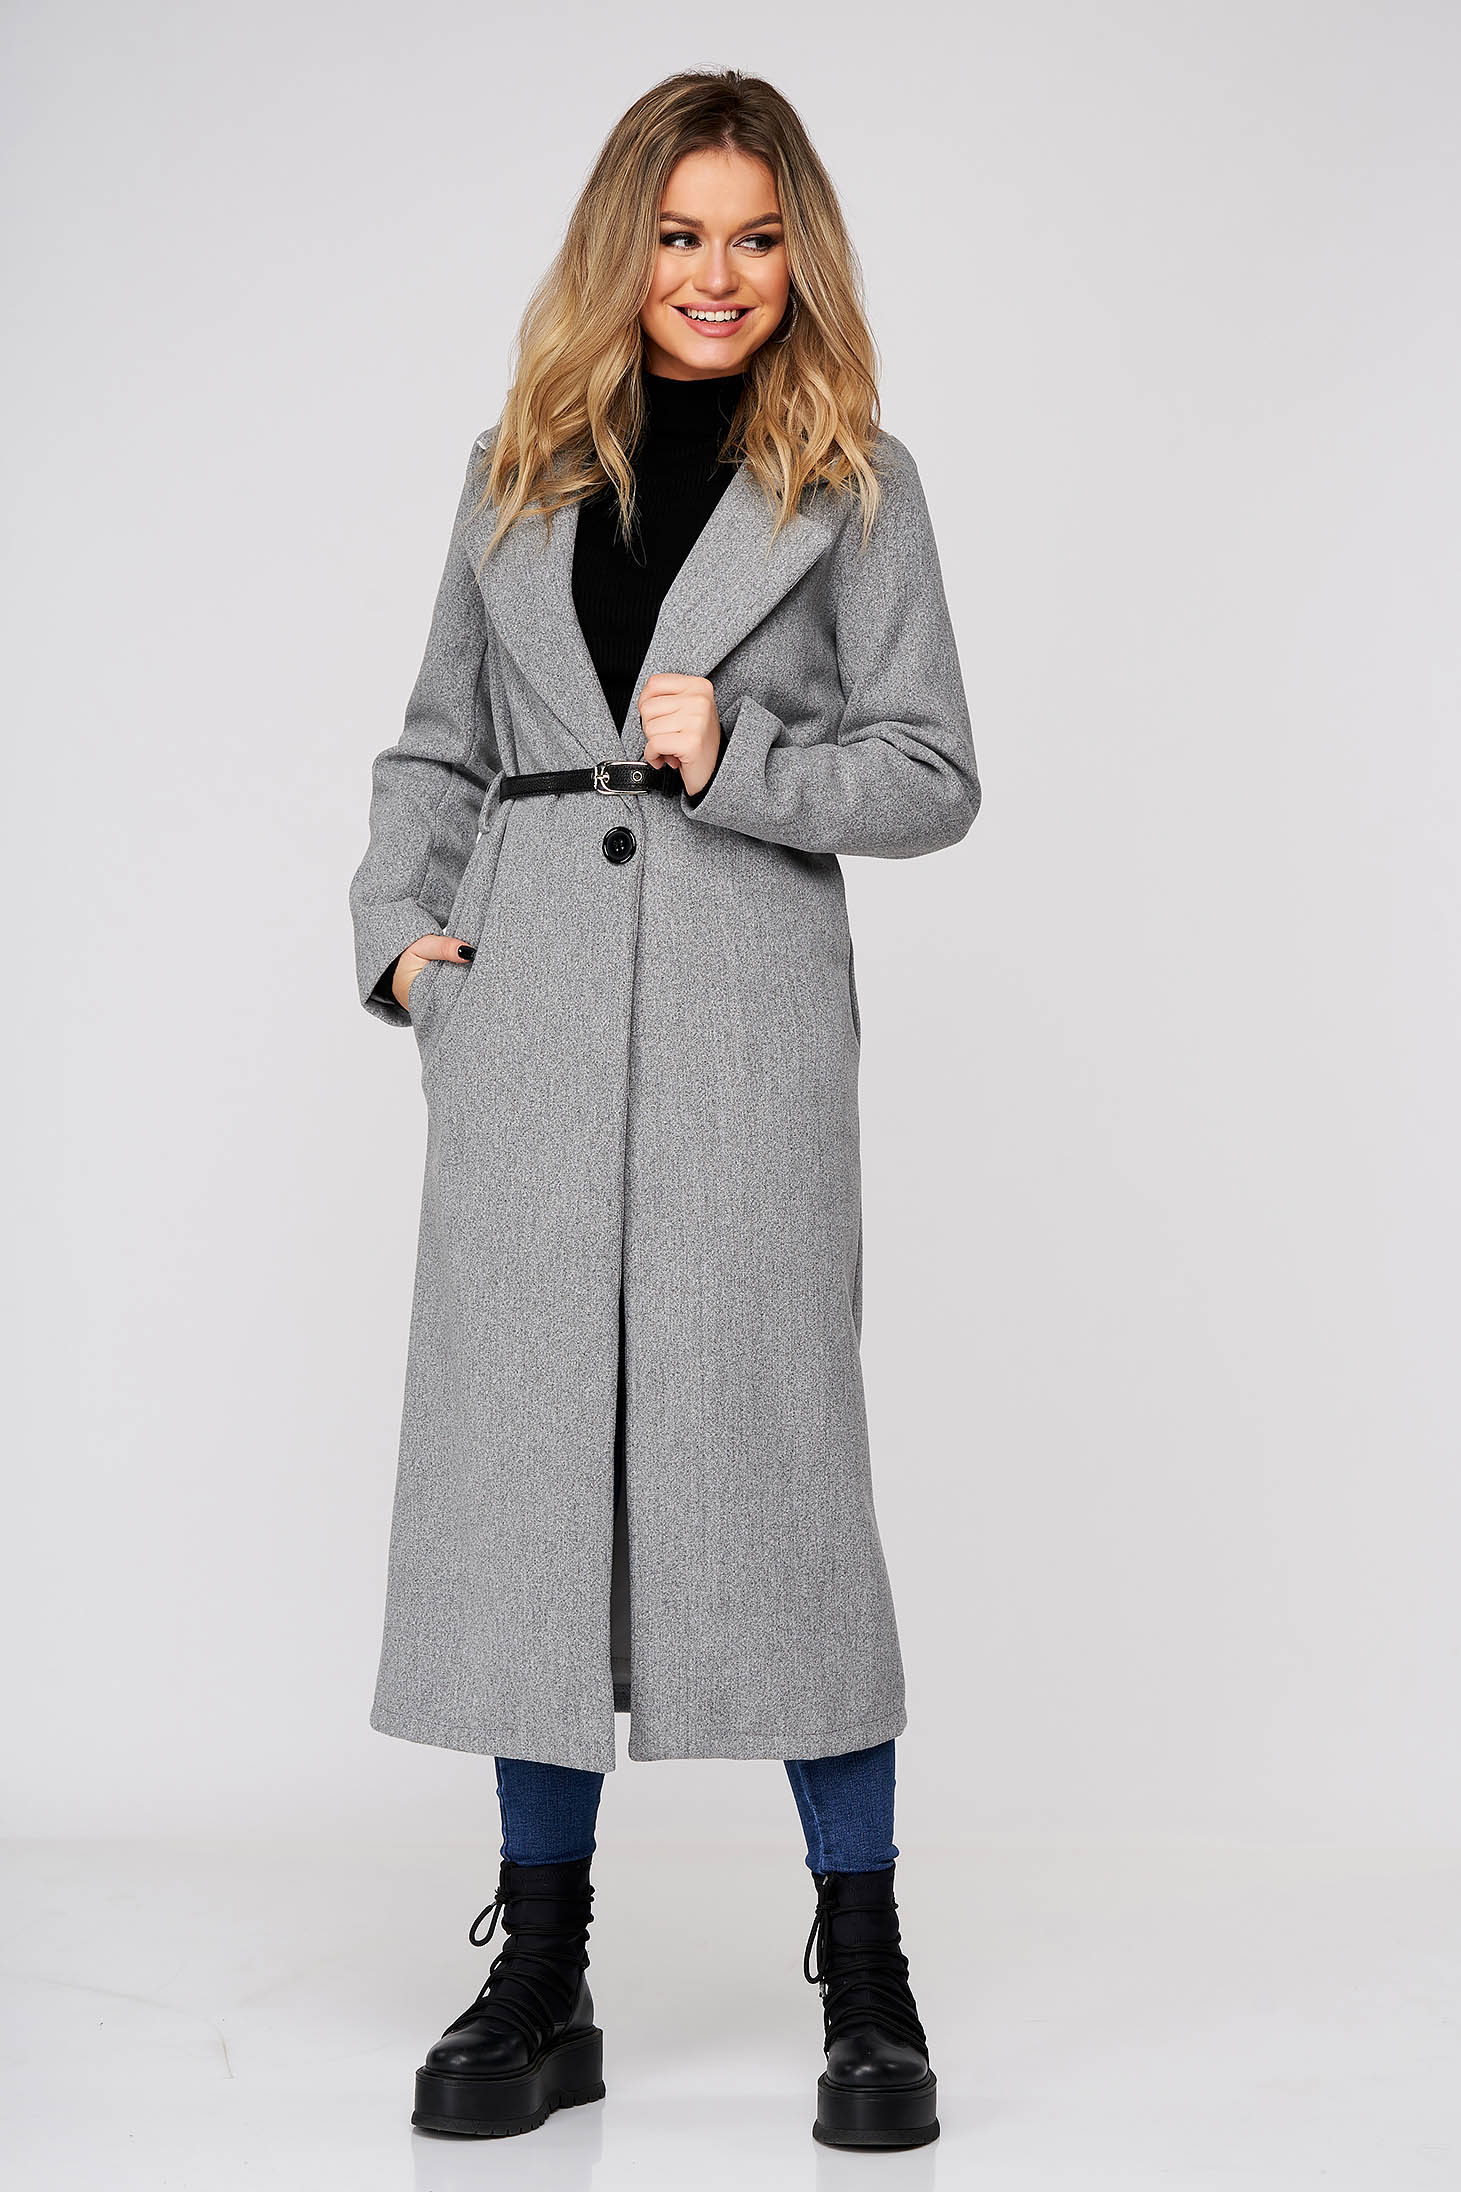 Grey coat casual long straight cloth with pockets accessorized with belt